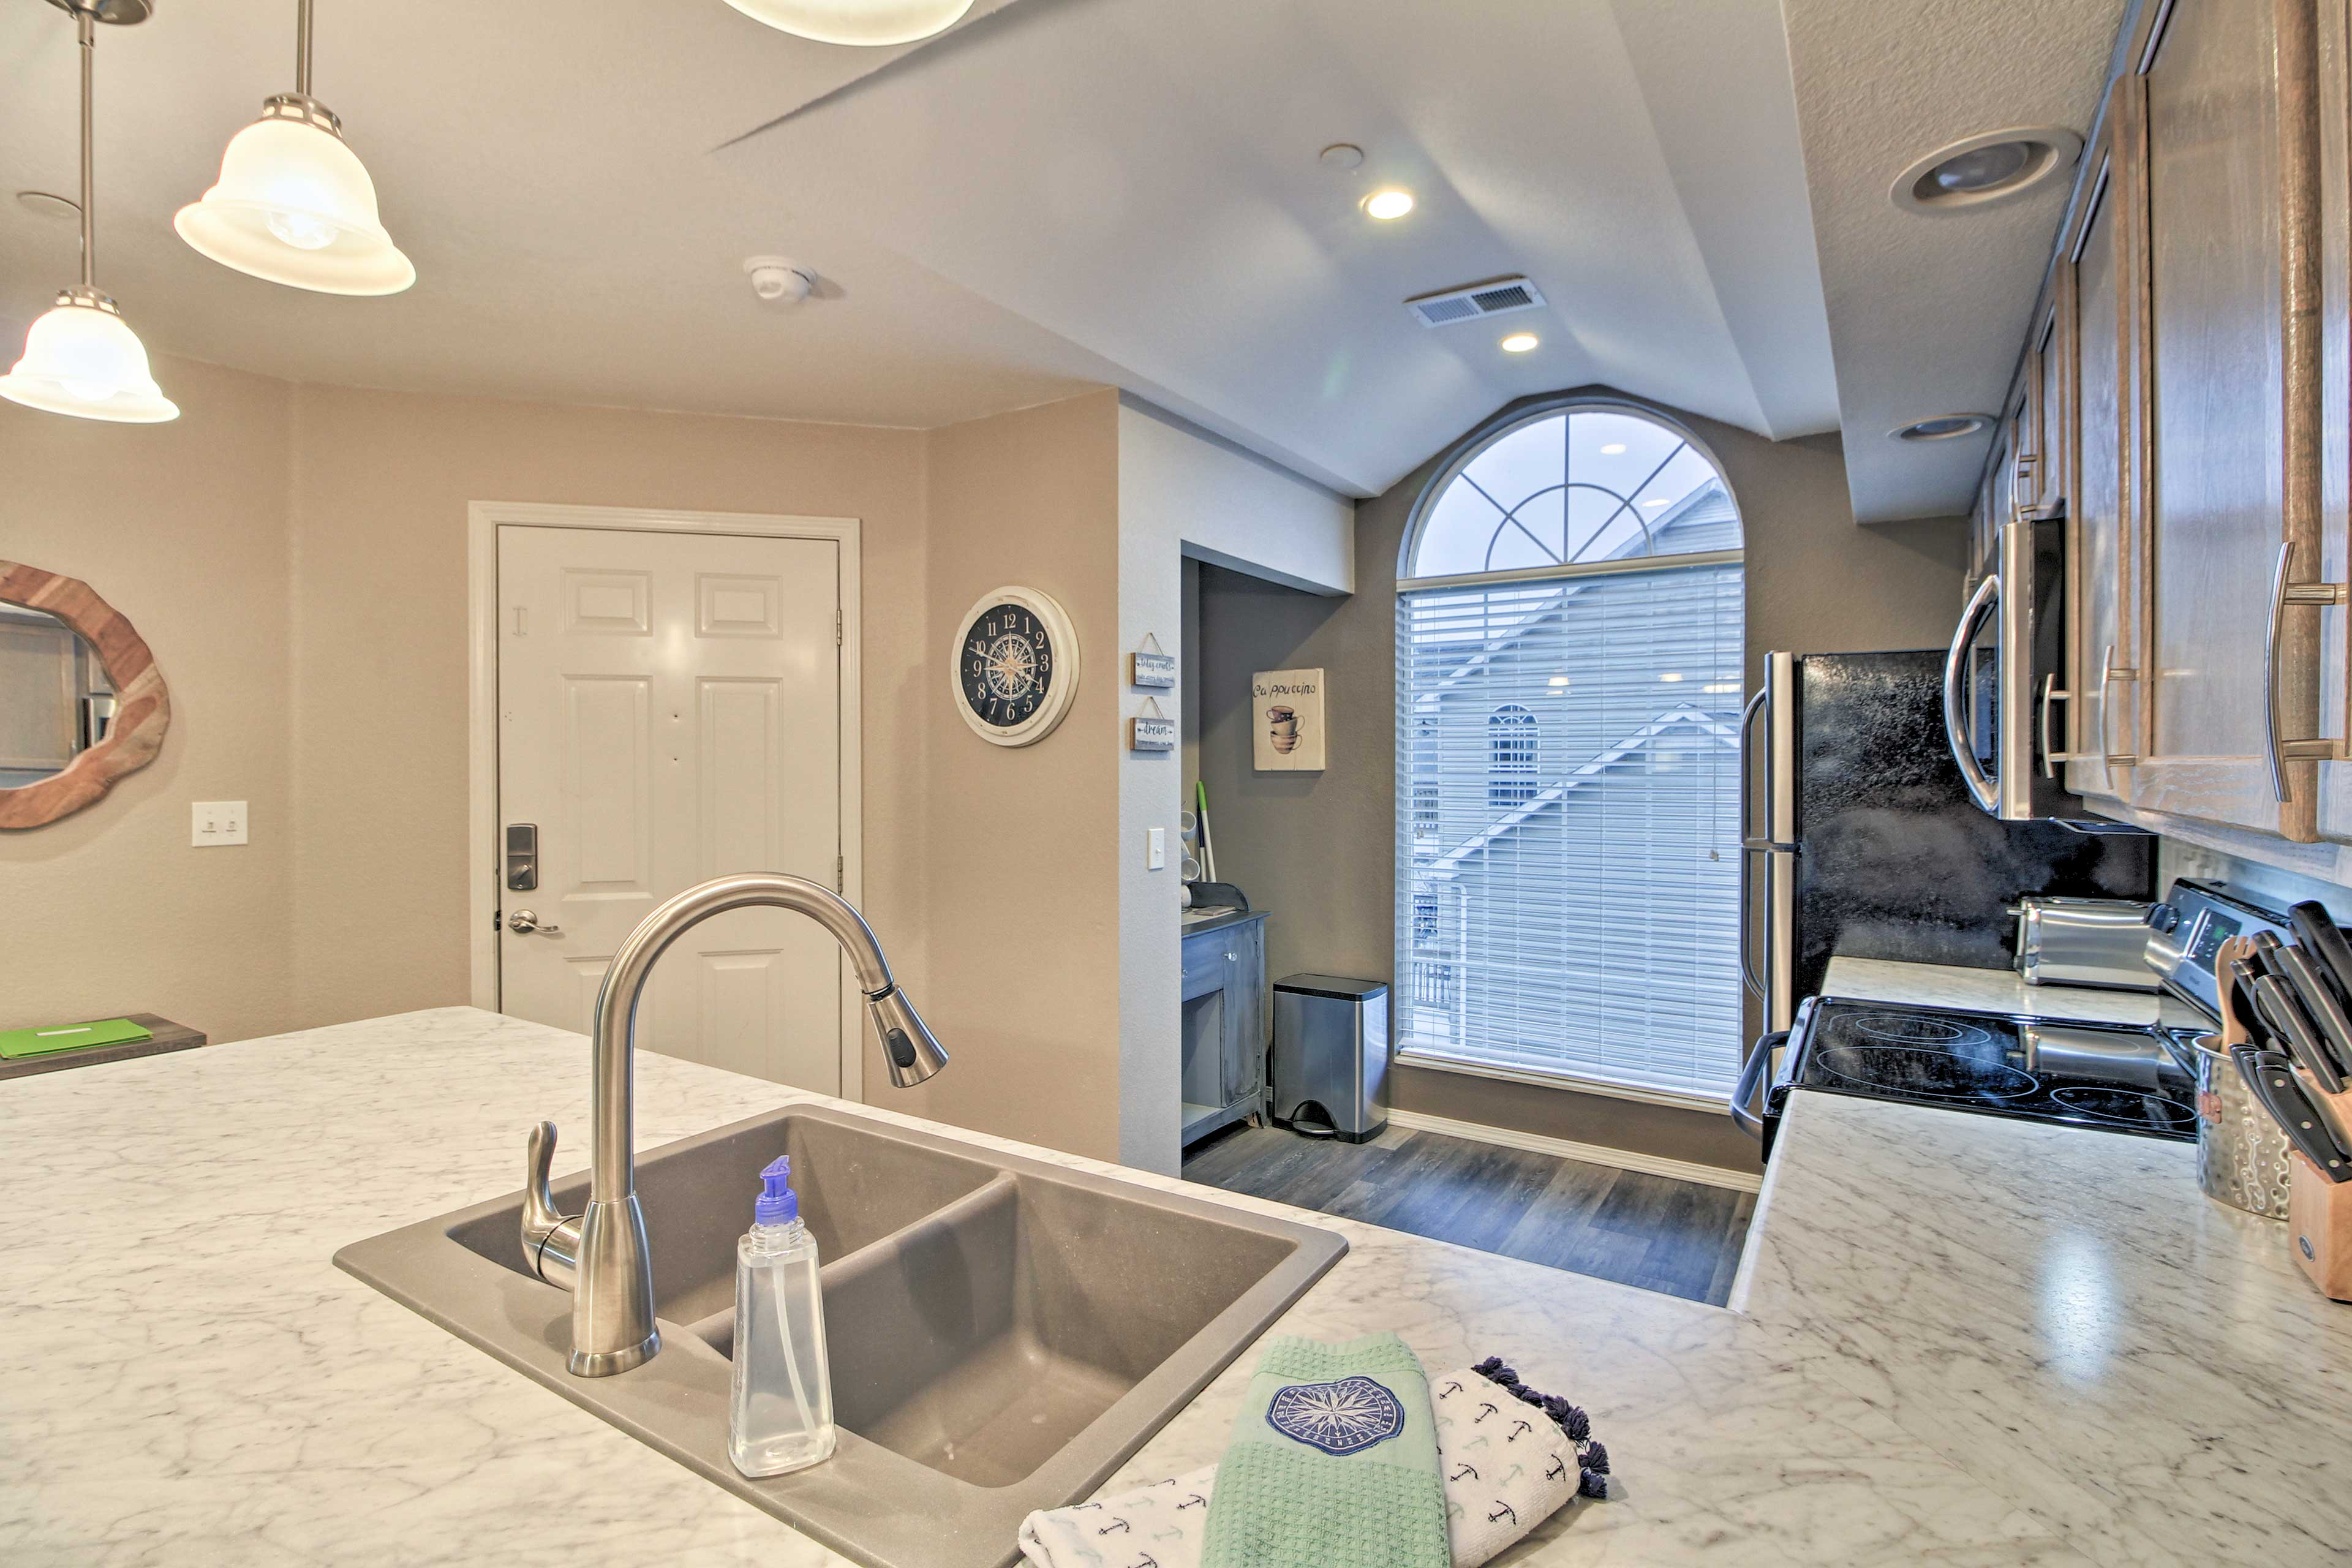 Cooking will be easy & fun in this brand new upscale ktichen.